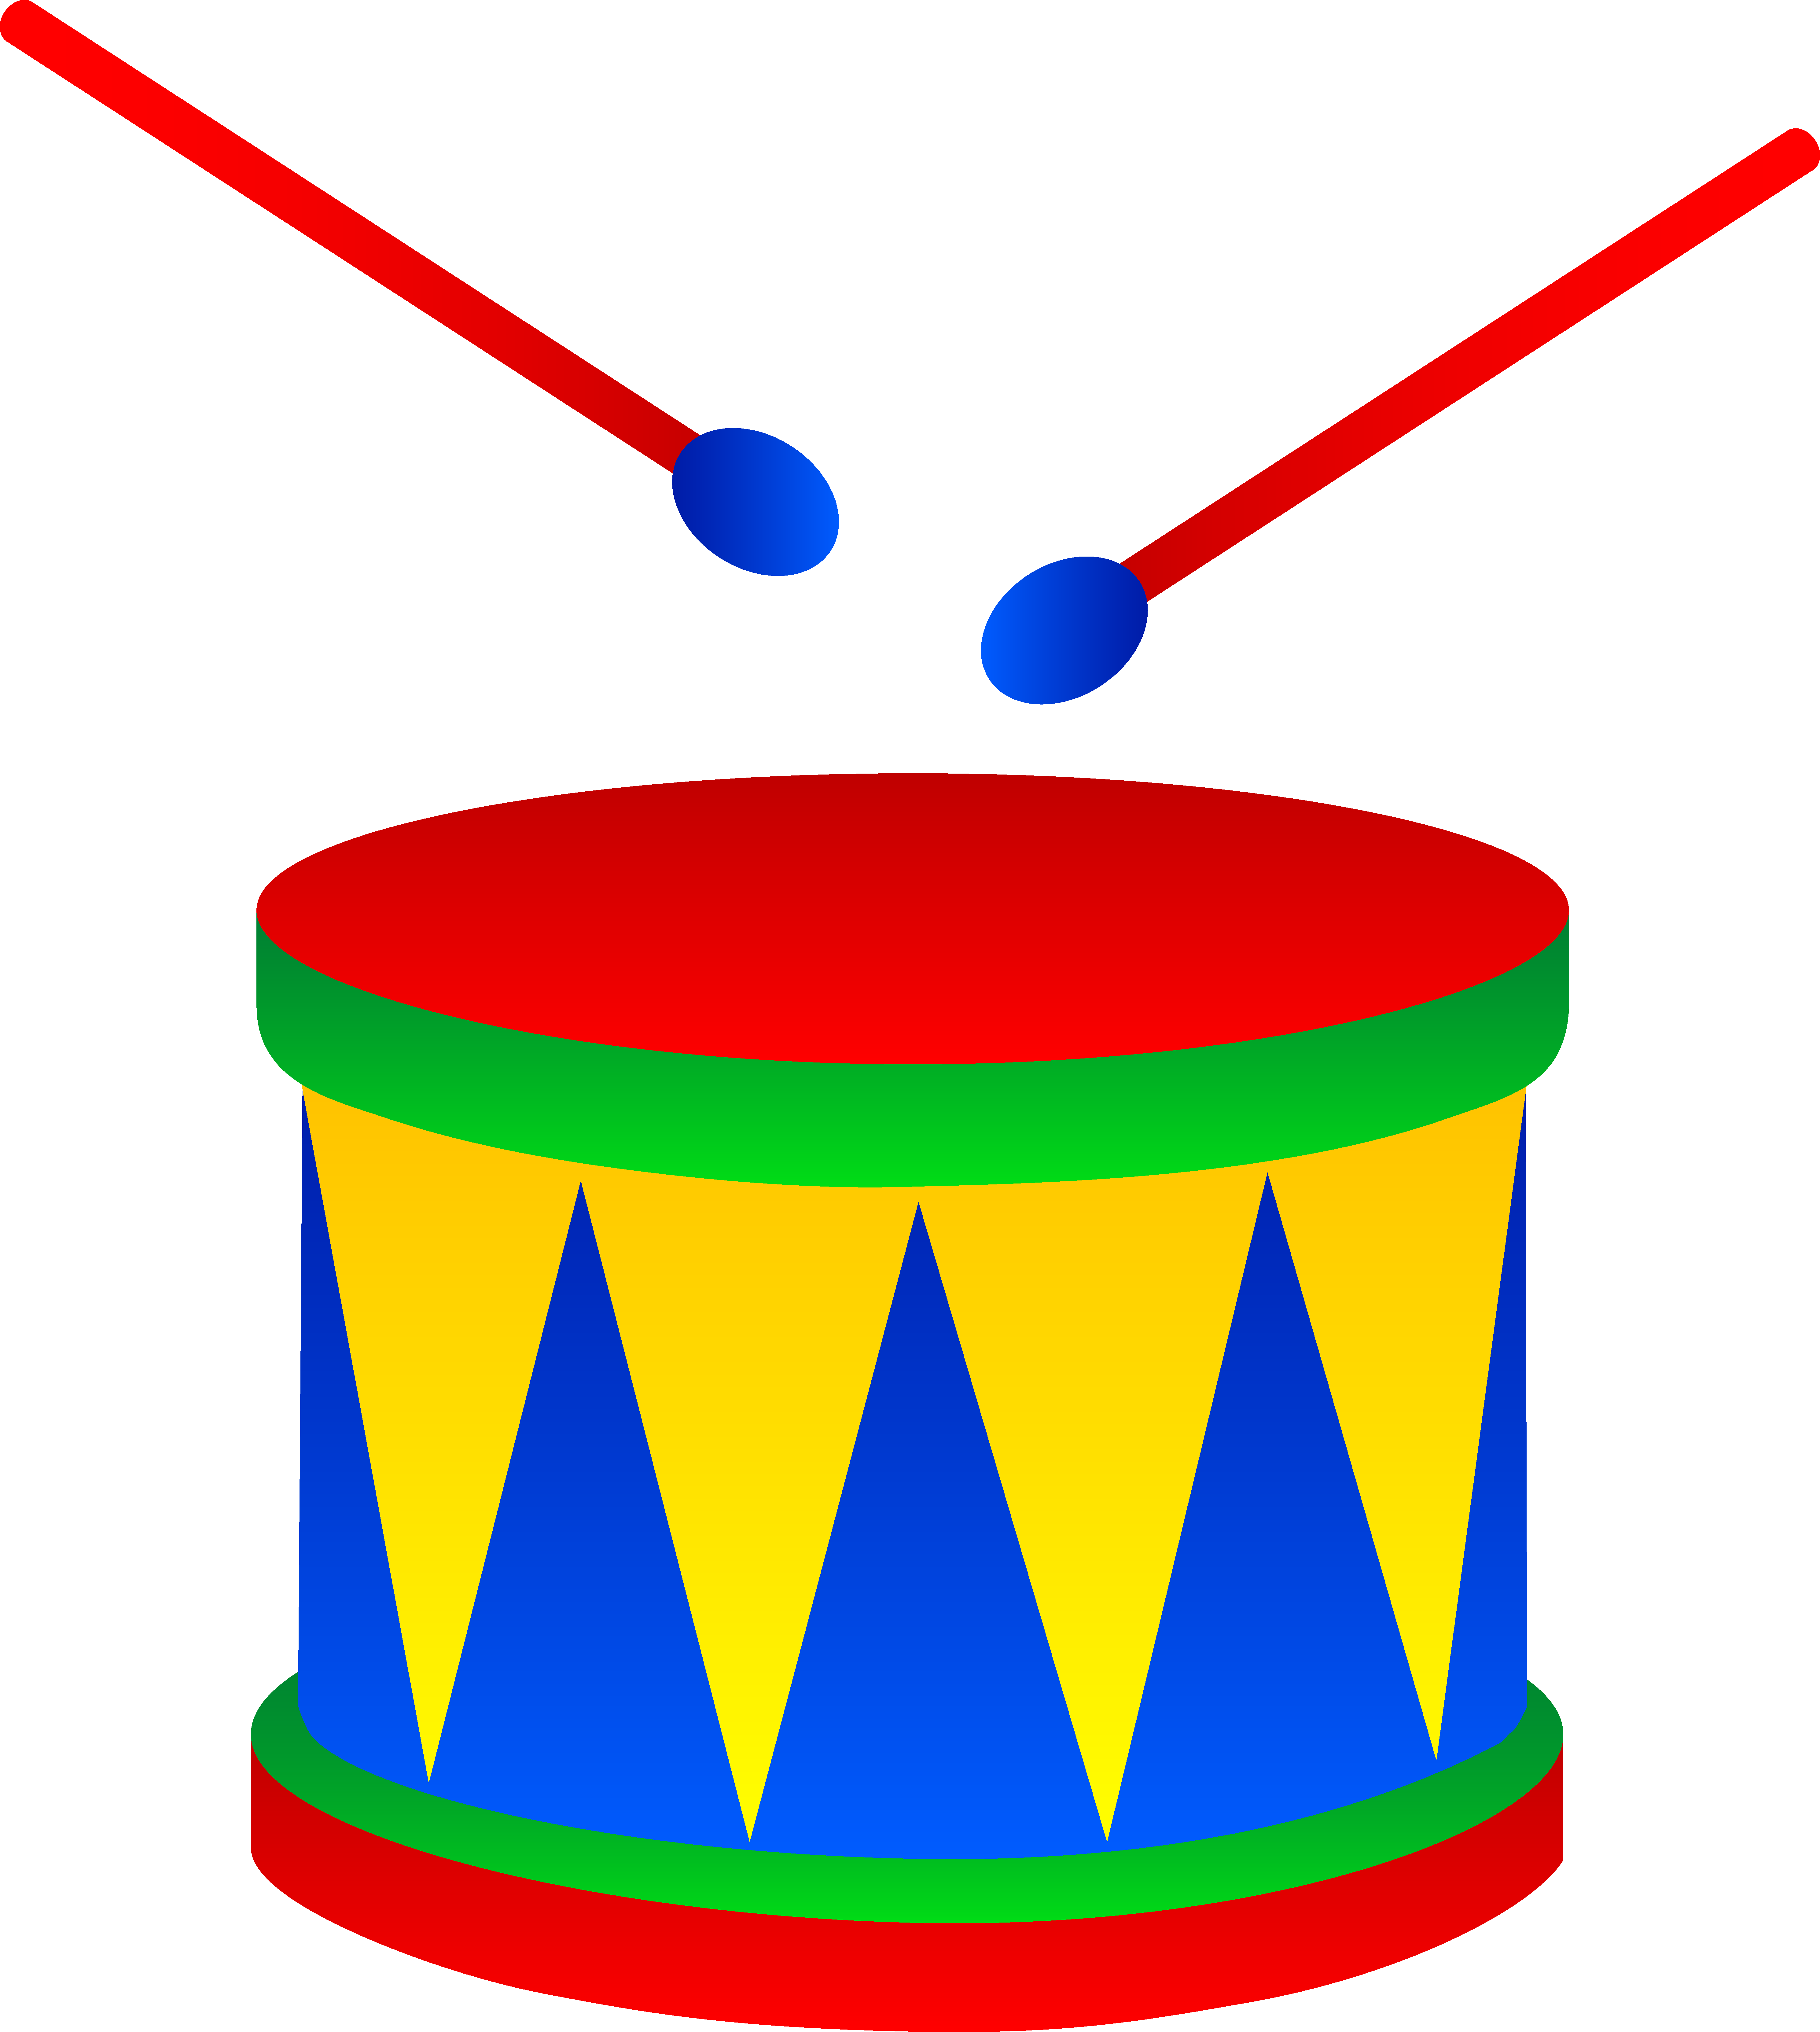 drums clipart percussion